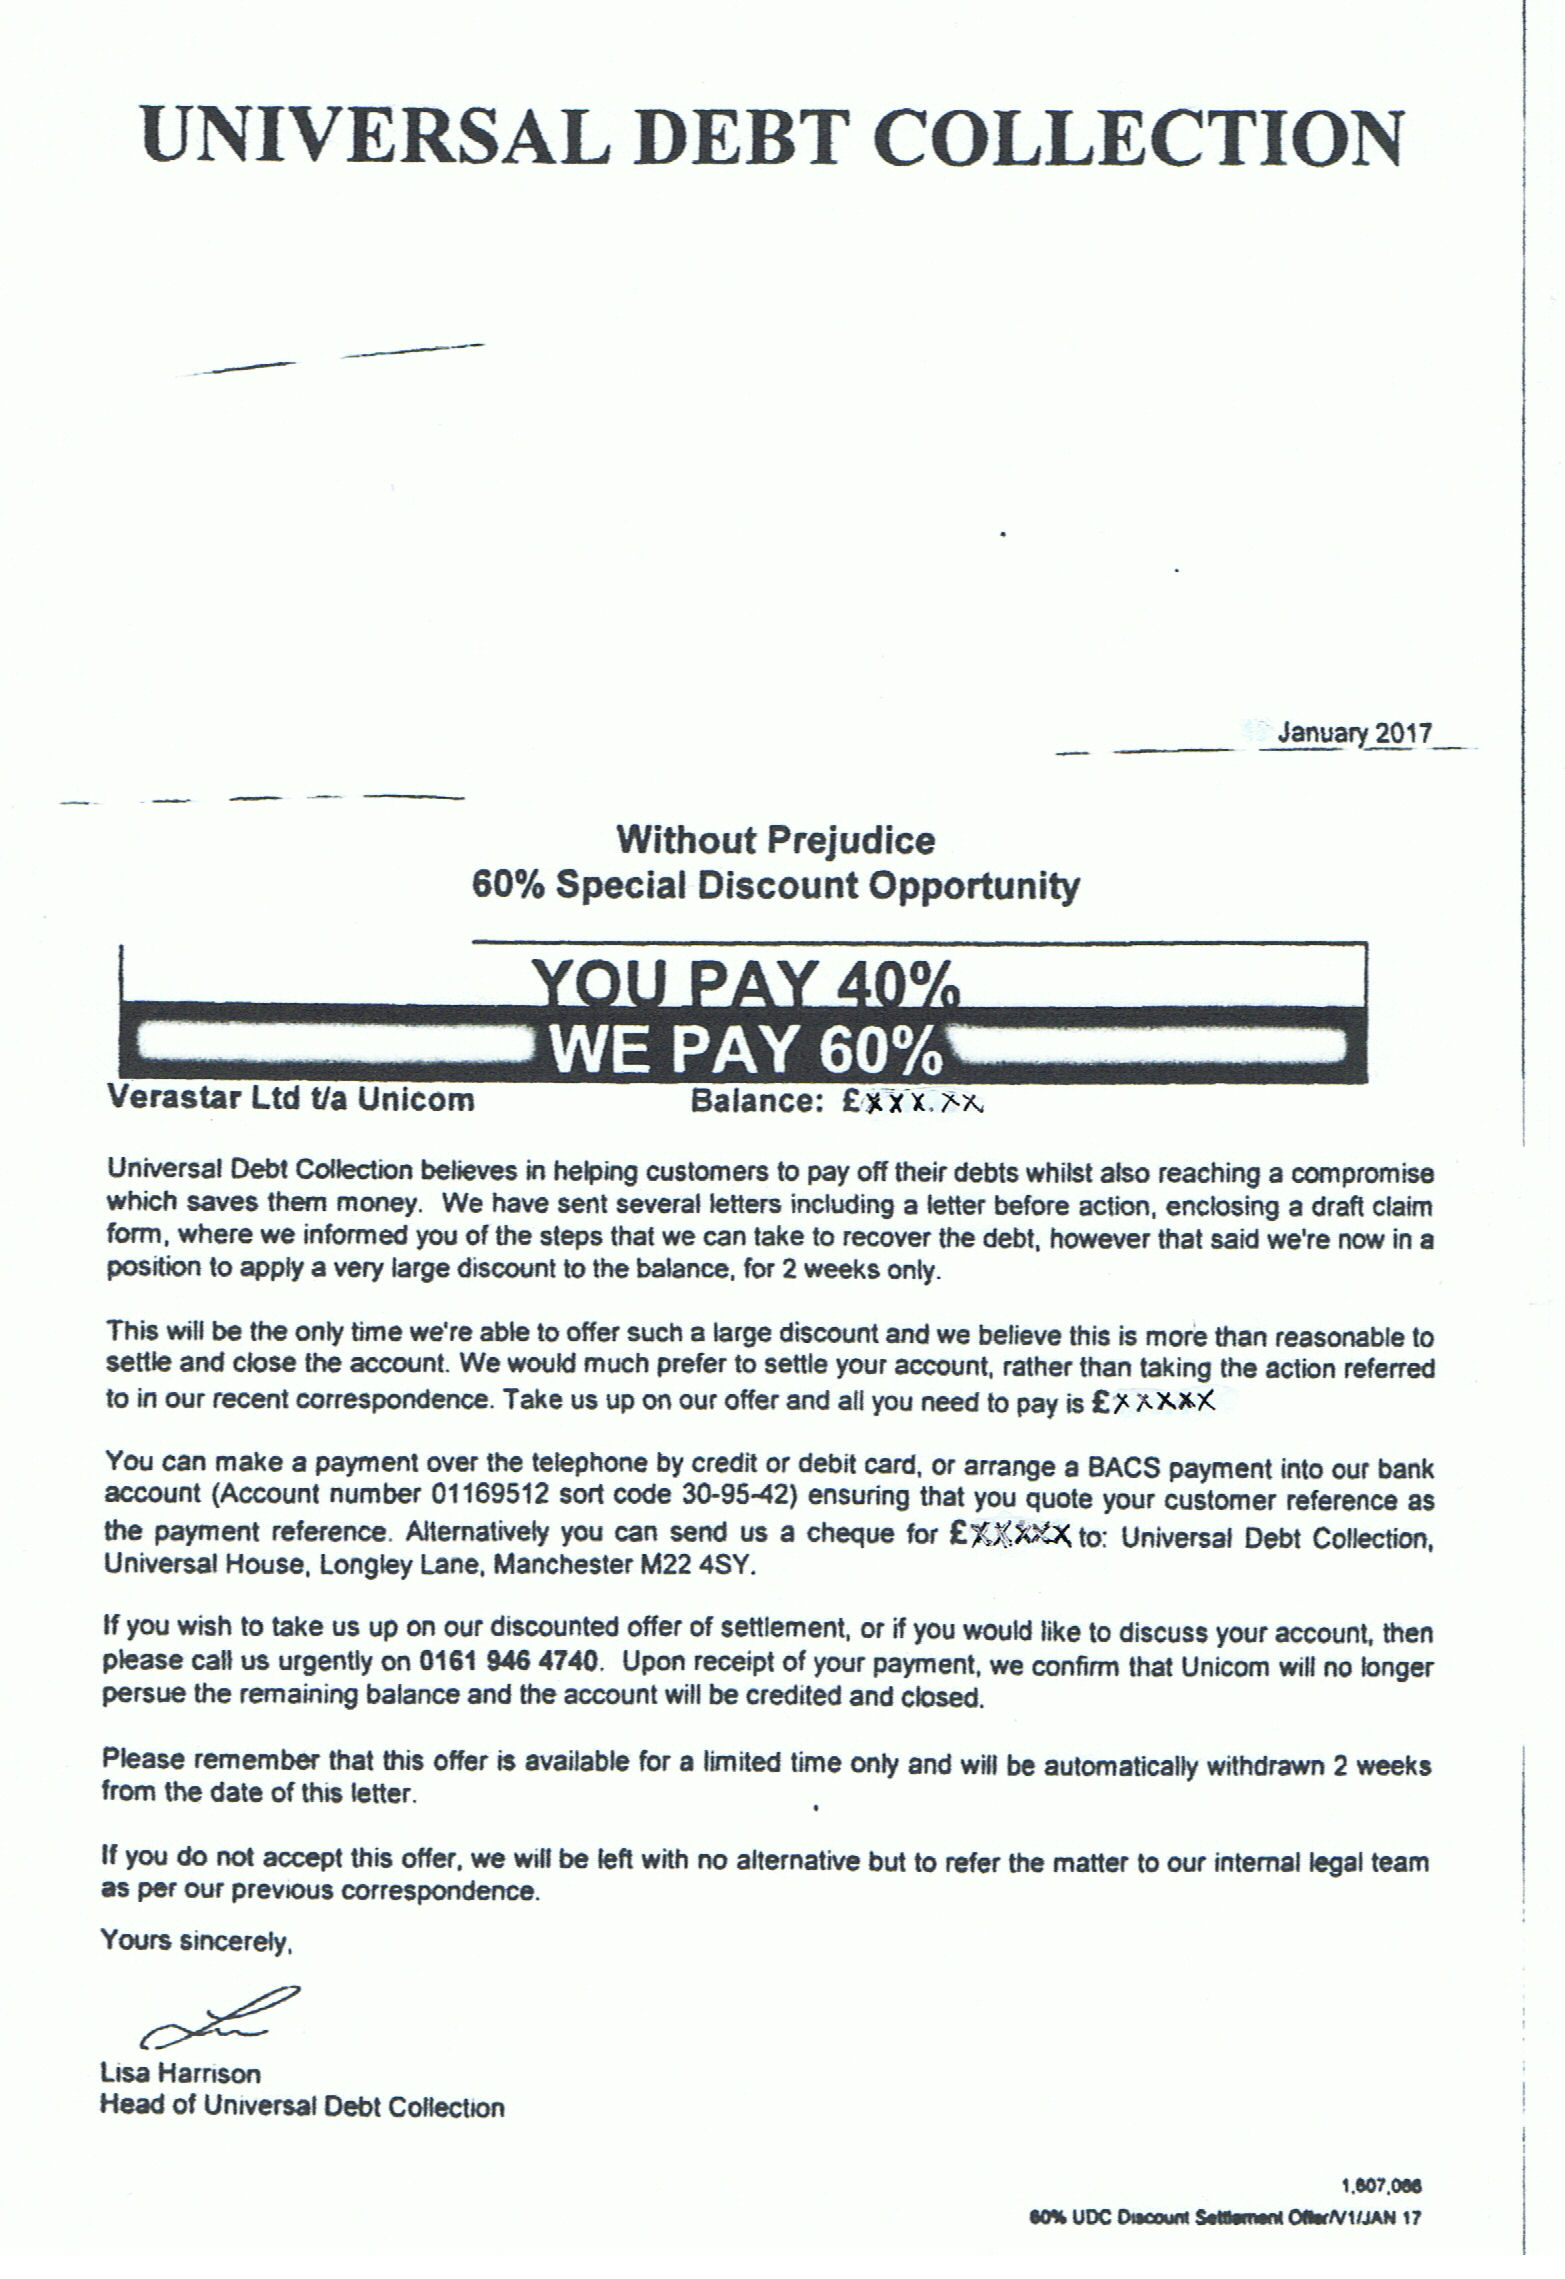 unicom complaints it is worth noting here that universal debt collection is not an external licensed debt collection agency it is simply the that verastar have